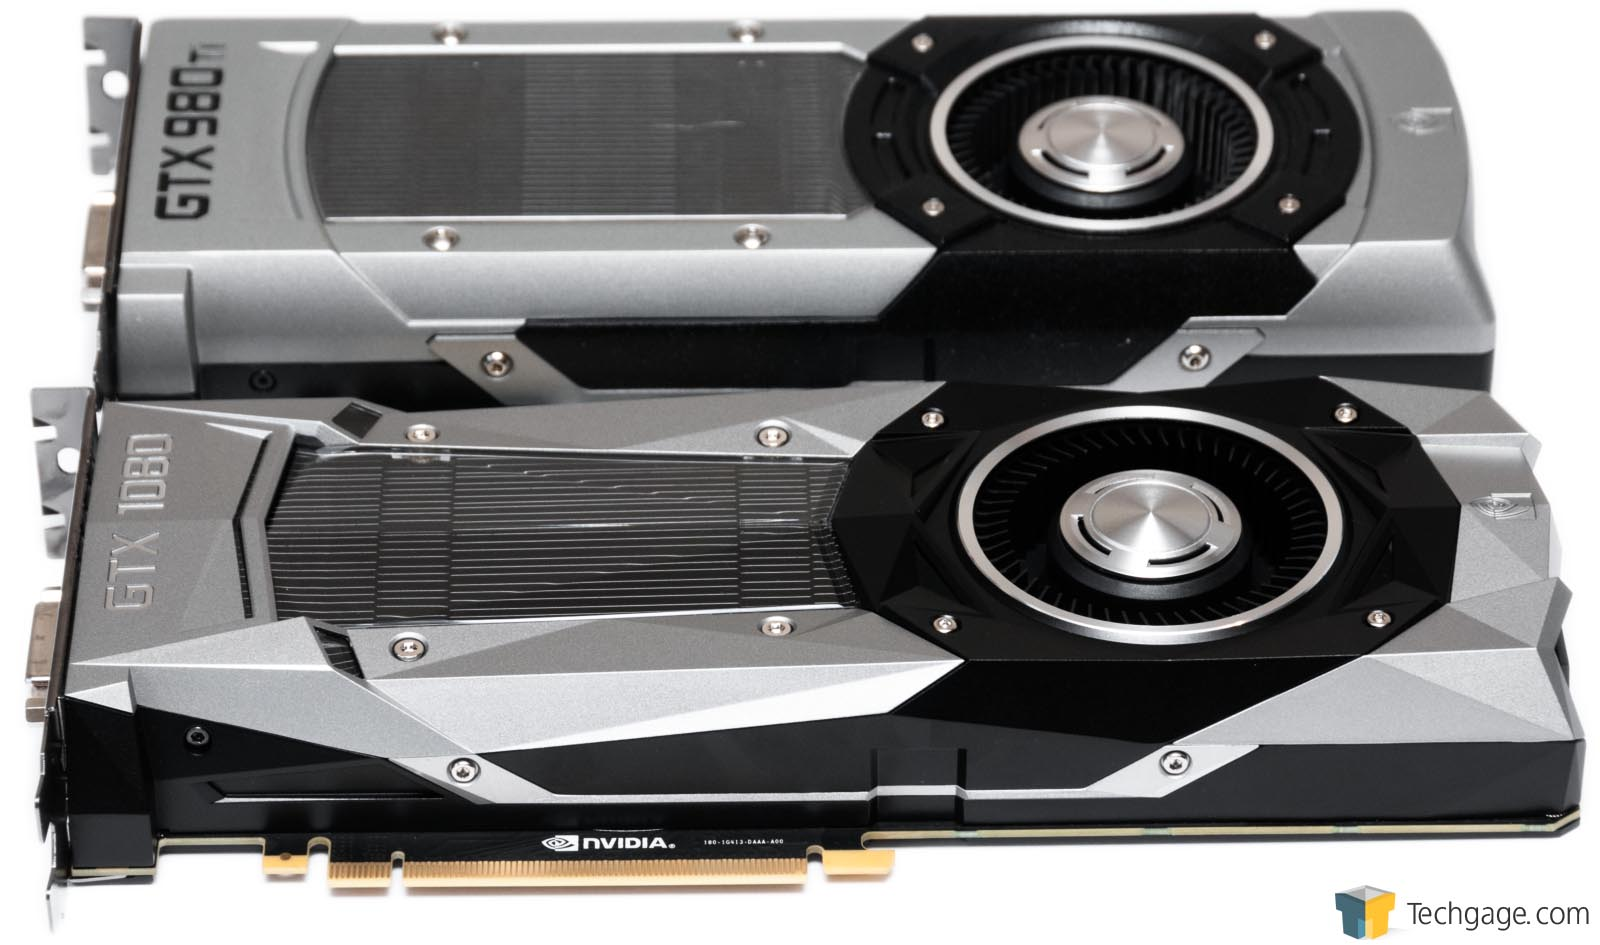 NVIDIA GeForce GTX 1080 Review: A Look At 4K & Ultra-wide